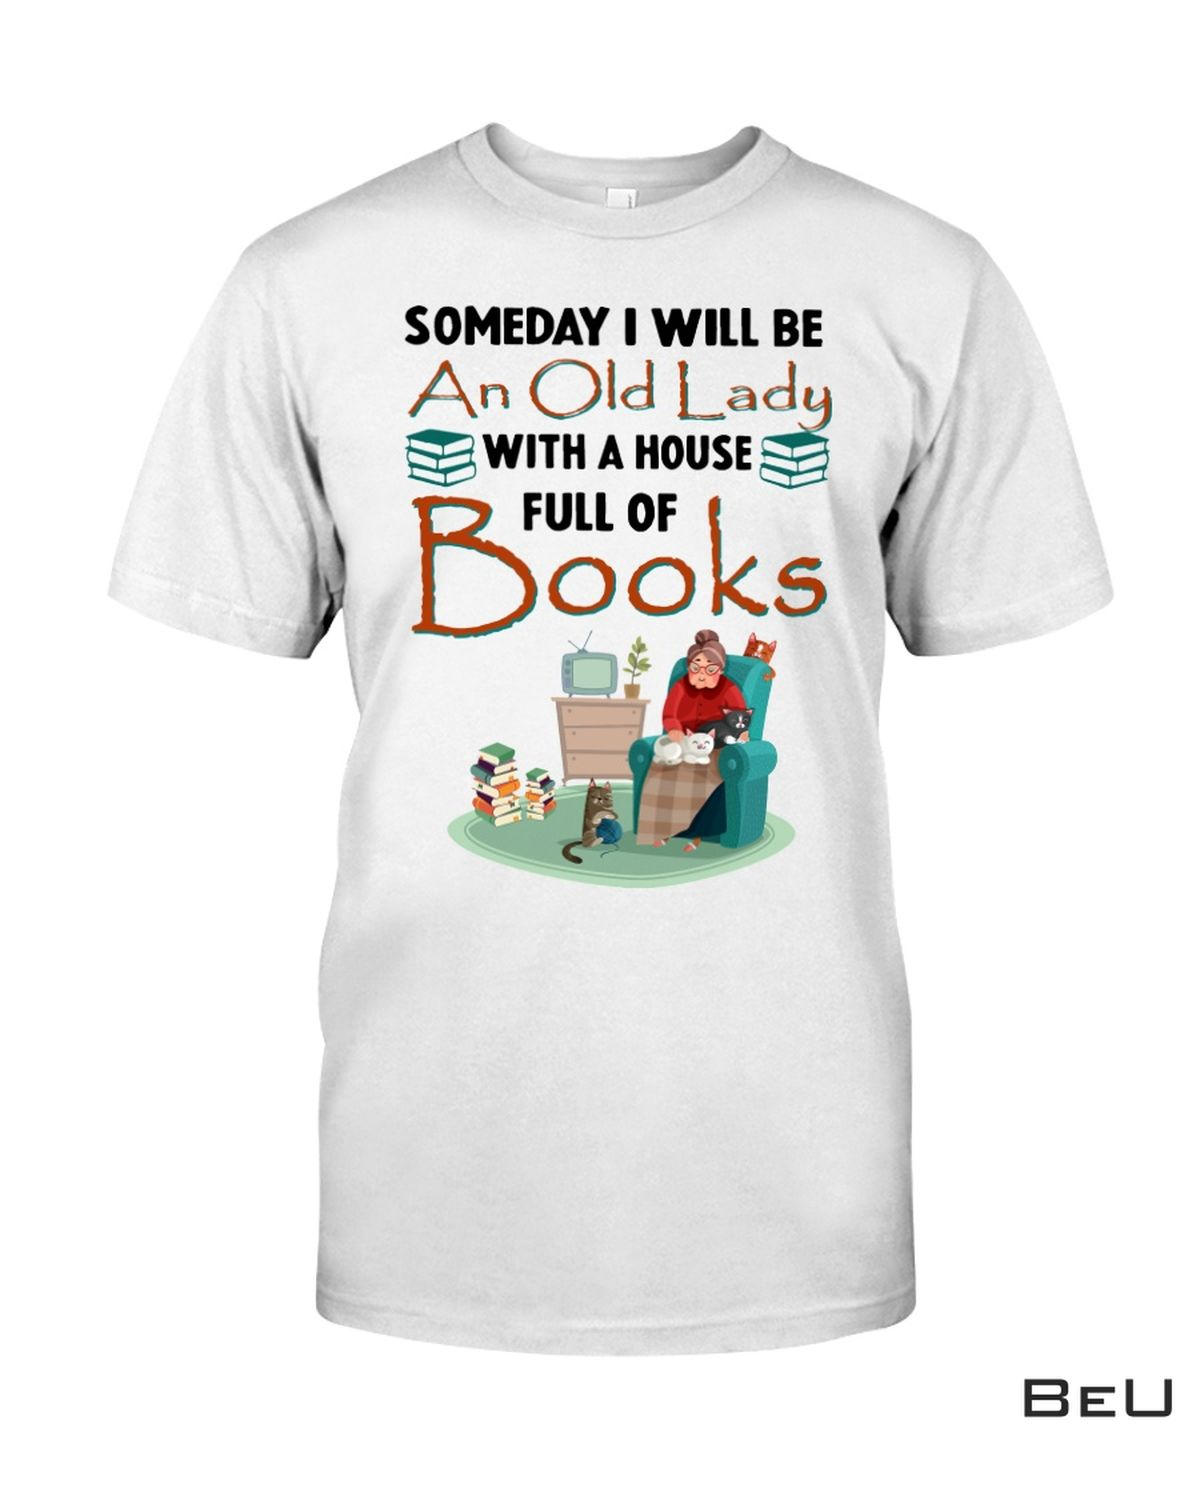 Someday I Will Be An Old Lady With House Full Of Books Shirt, hoodie, tank top